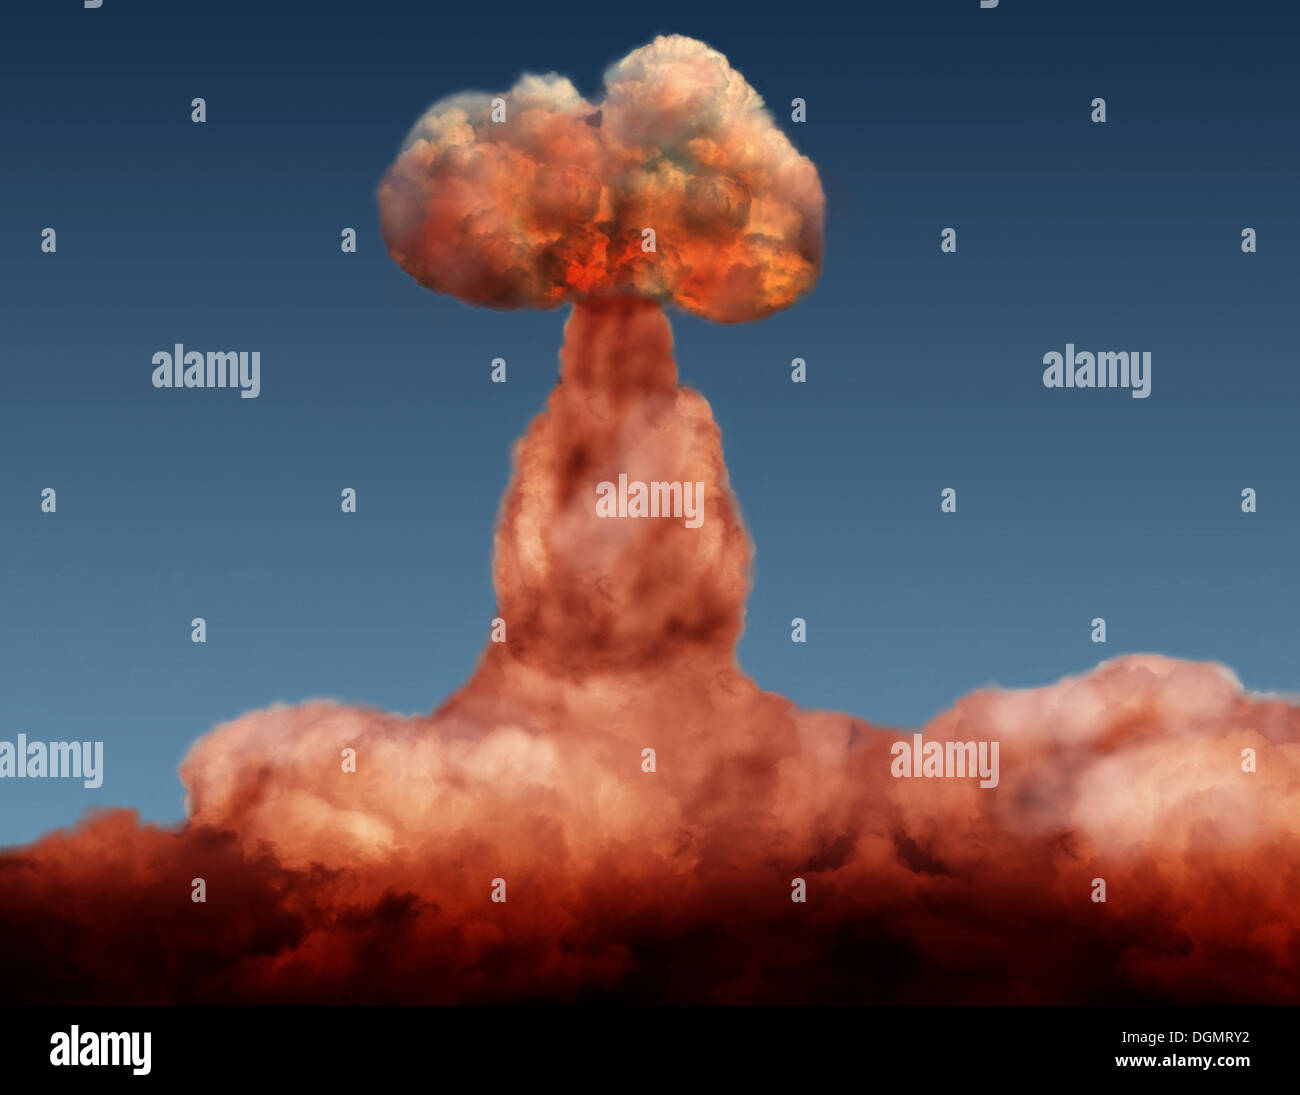 explosion of atomic bomb on background of sky - Stock Image